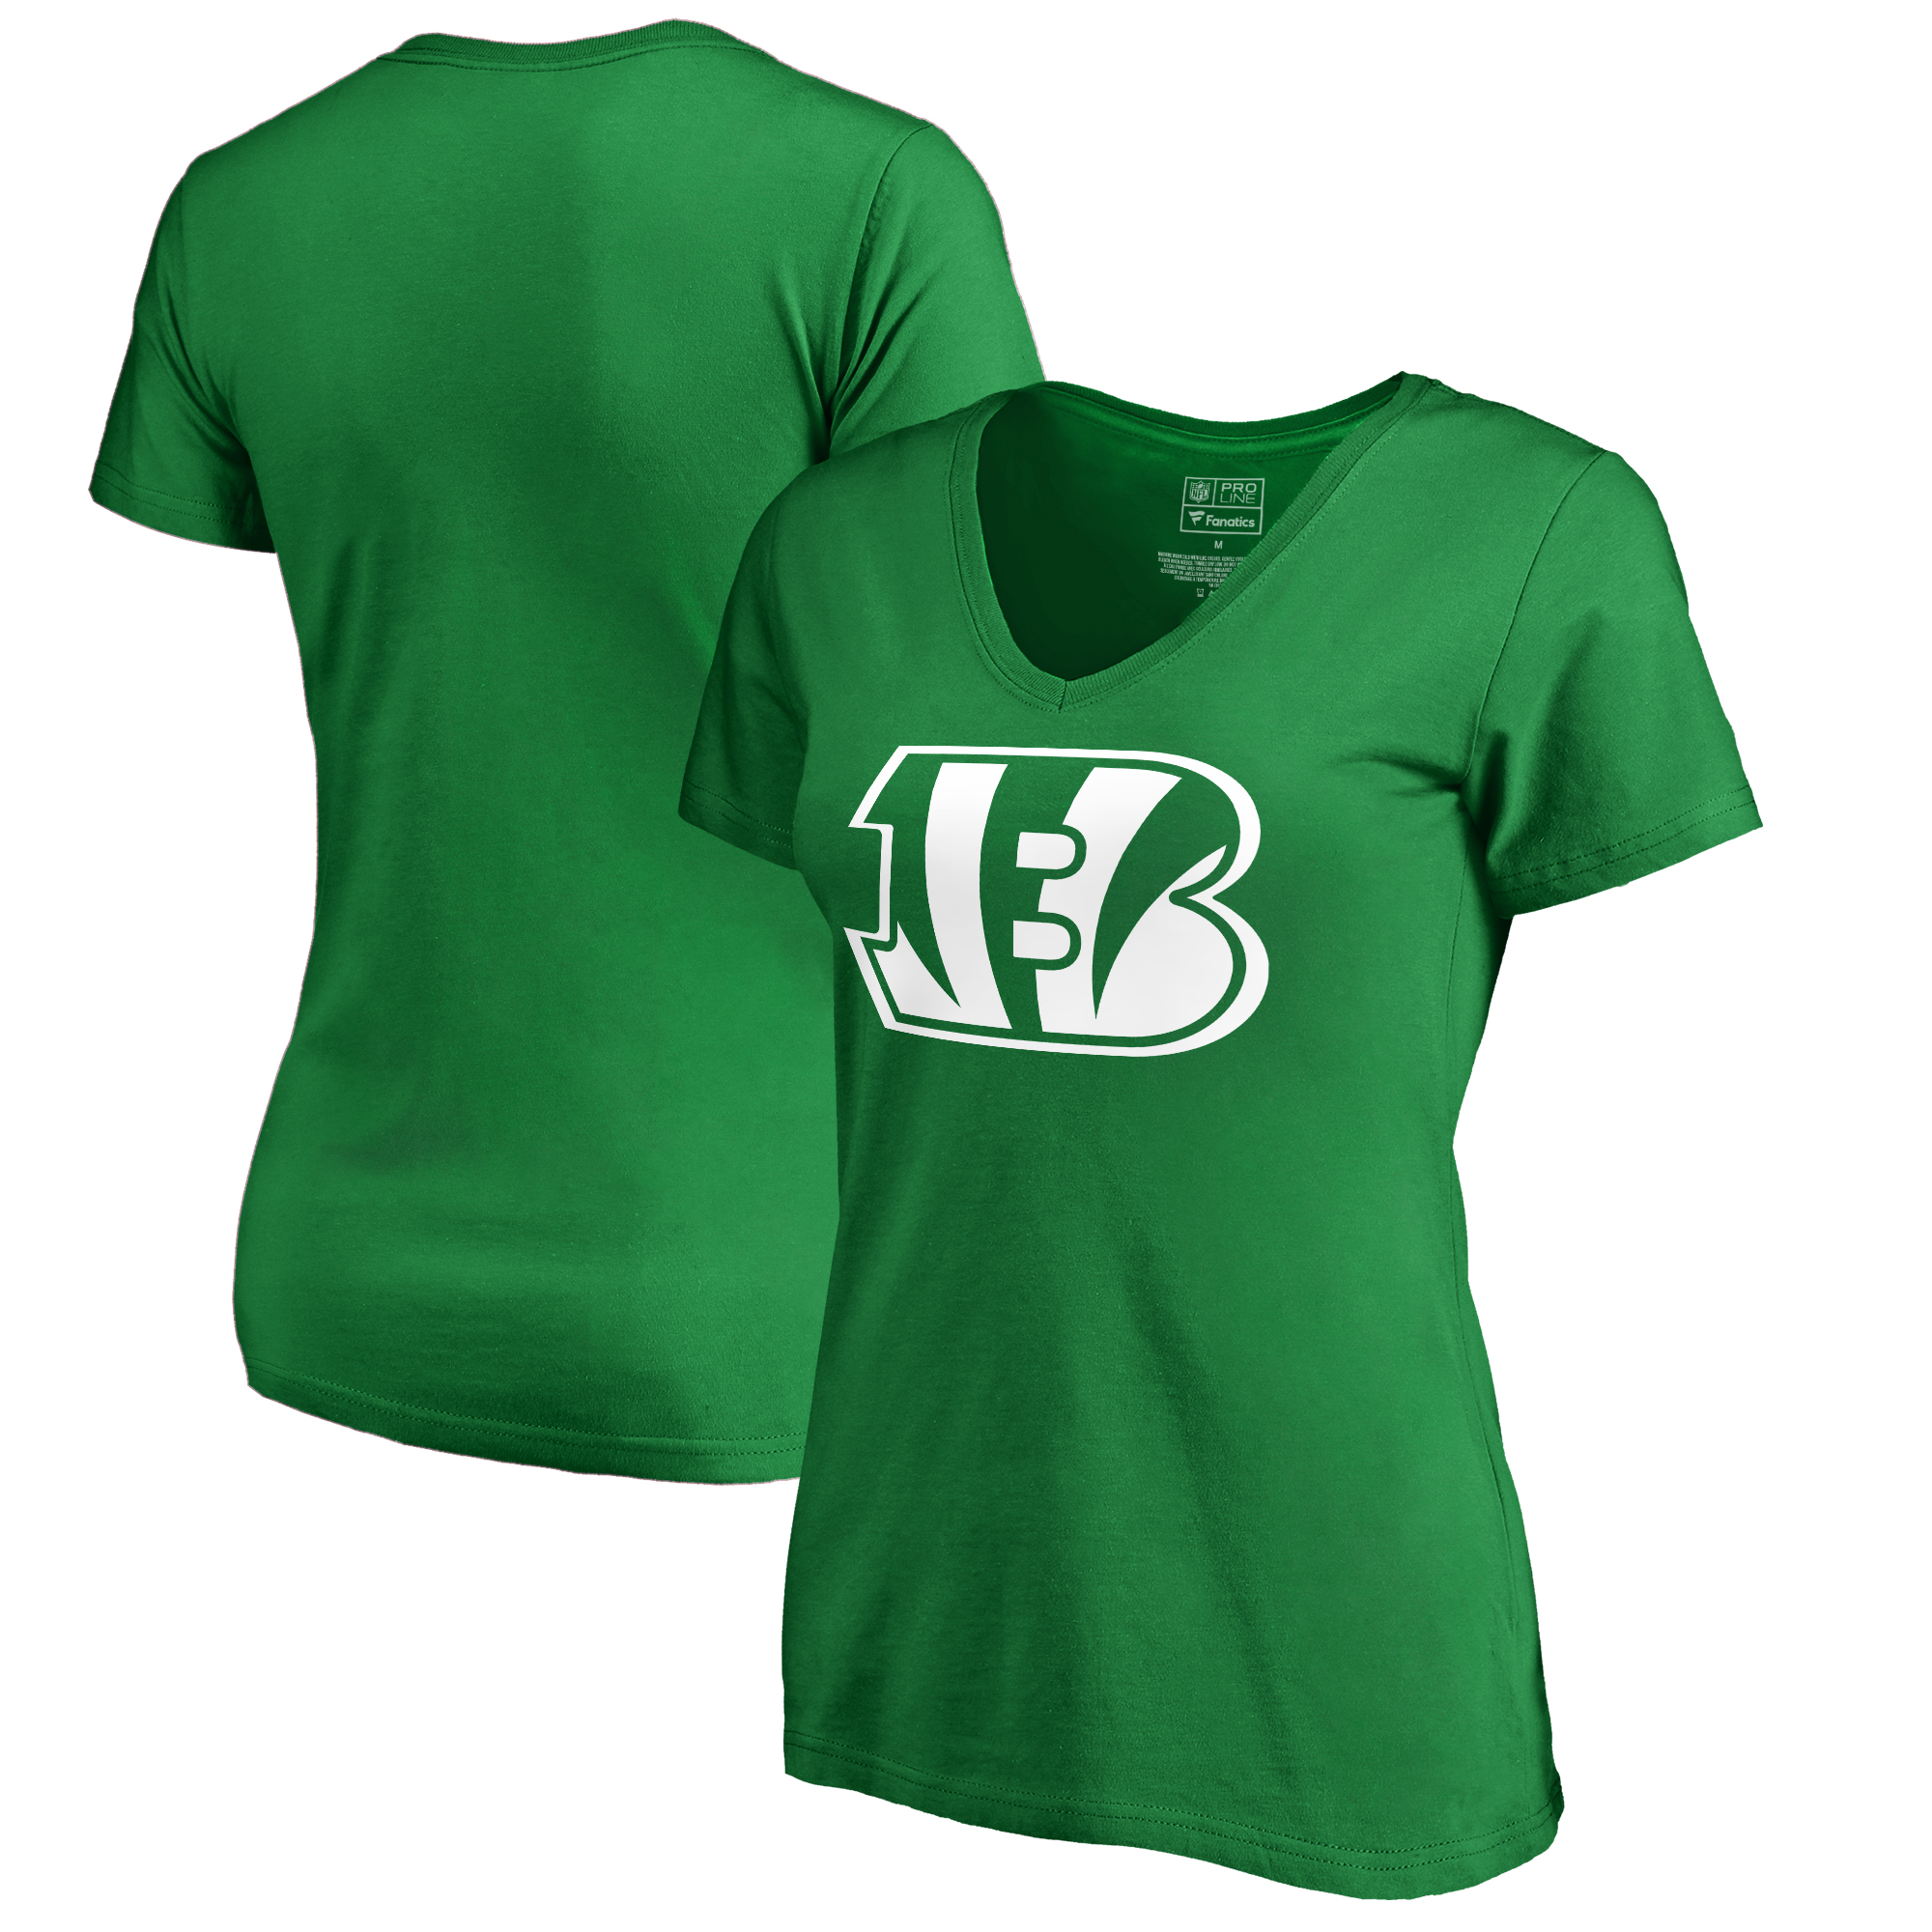 Cincinnati Bengals NFL Pro Line by Fanatics Branded Women's St. Patrick's Day White Logo T-Shirt - Kelly Green